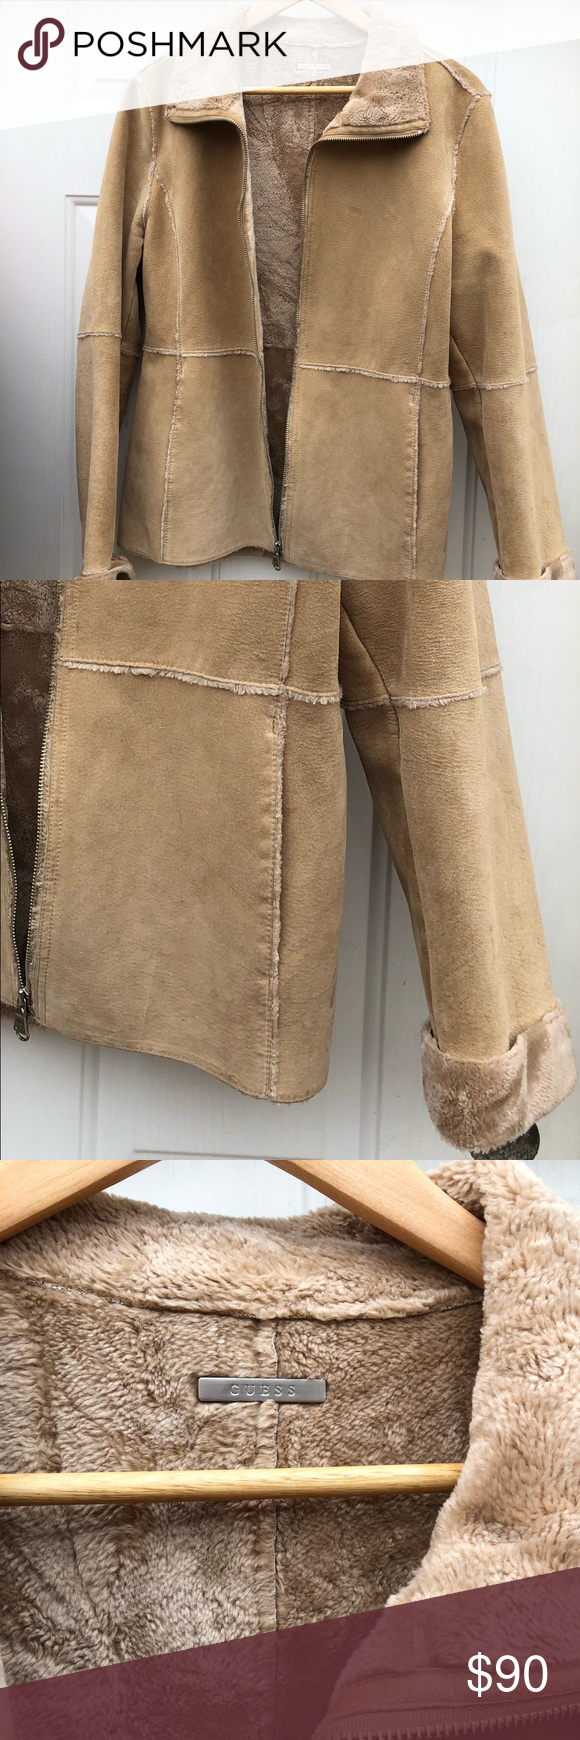 Guess 100 Leather fauxfur lined jacket Warm and comfy